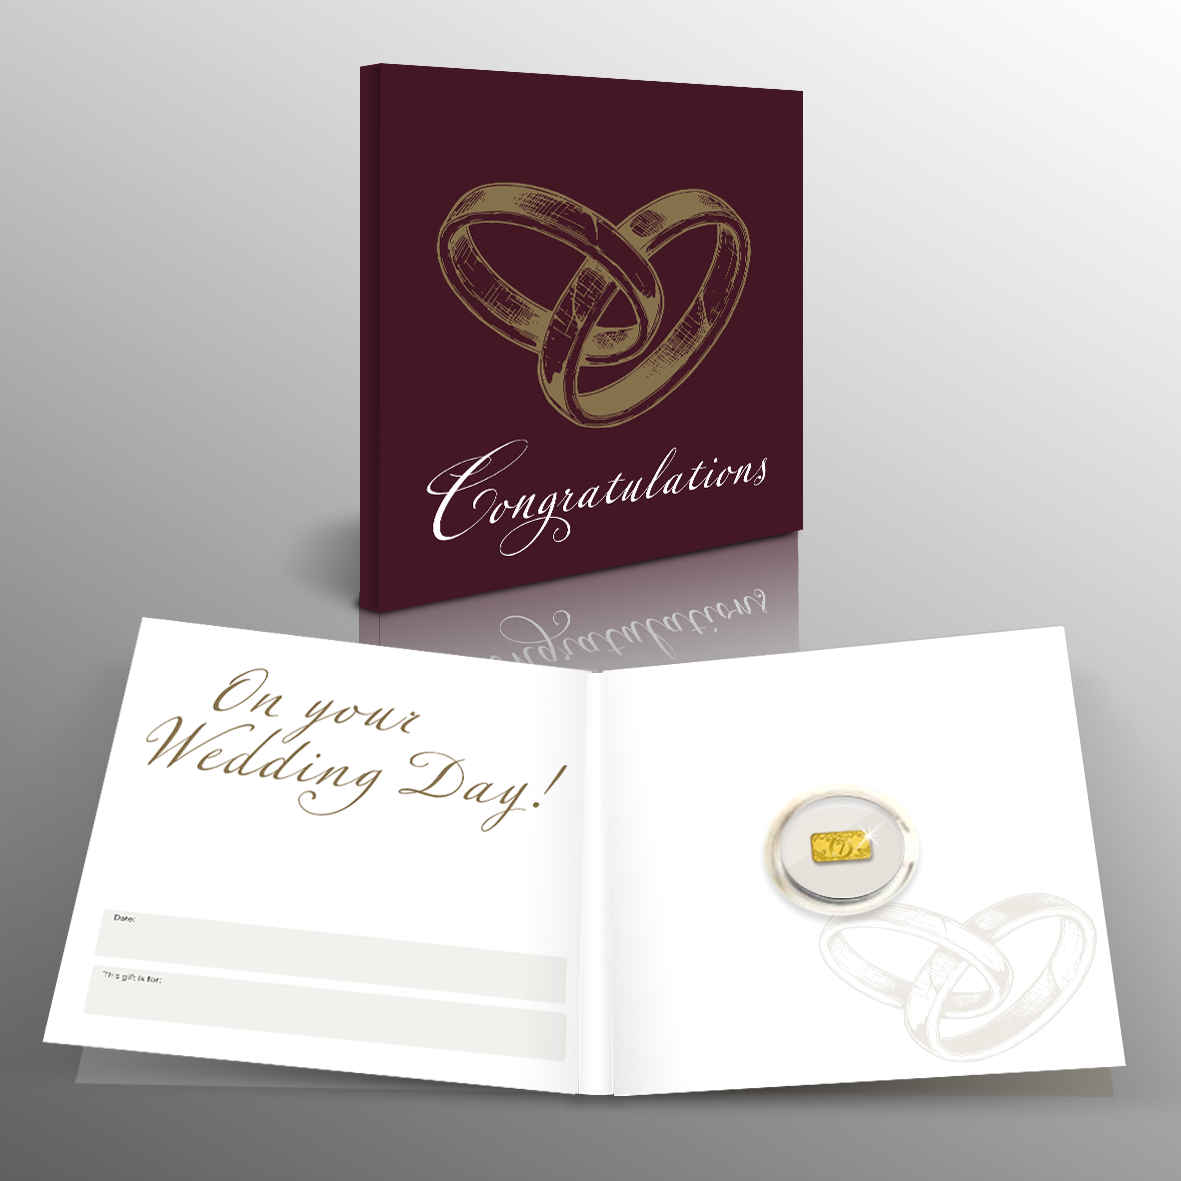 The Pure Gold 'Wedding' Lucky Ingot is an unusual and thoughtful gift that makes for the perfect sentimental keepsake, bringing luck for a lifetime!